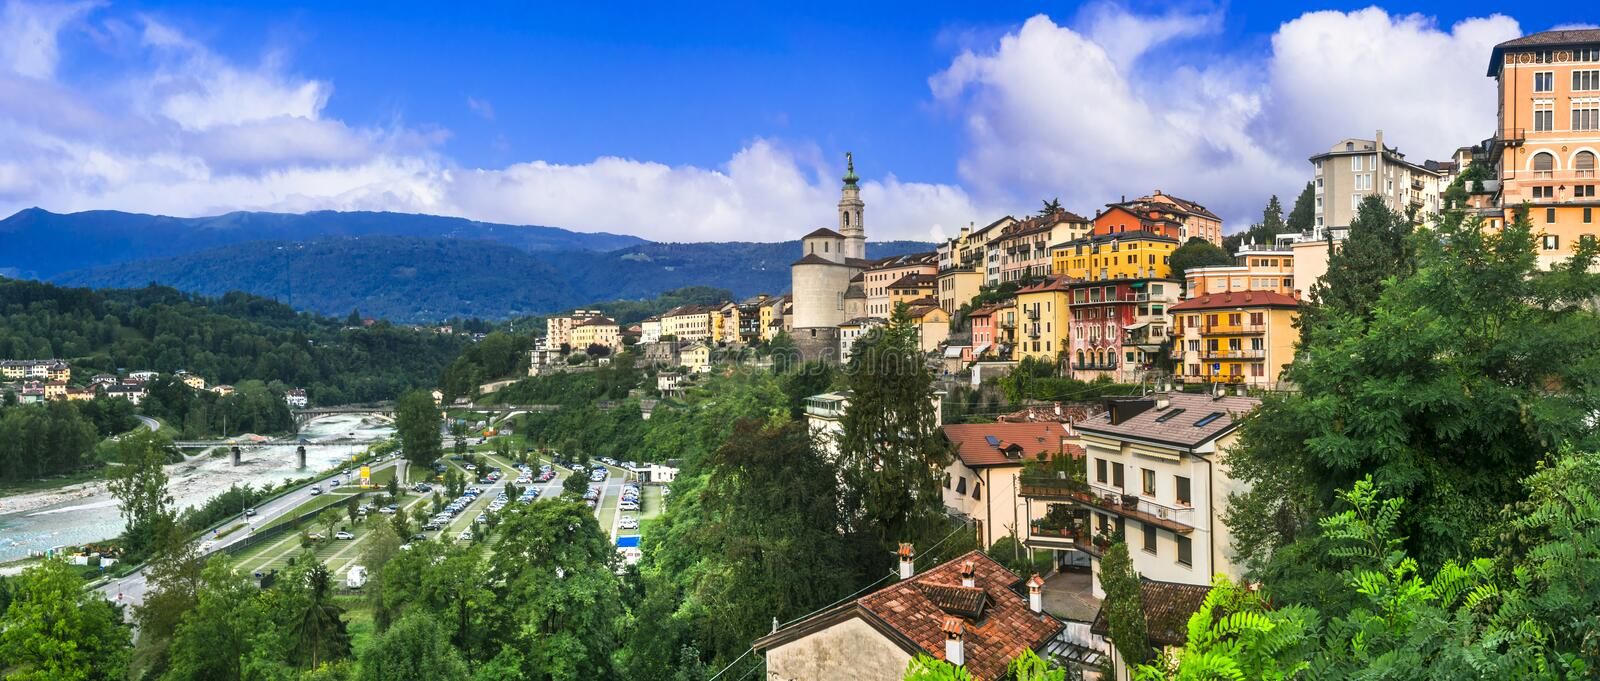 Travel in northern Italy - beautiful Belluno town surrounded by Dolomite mountains. Impressive Belluno town,panoramic view,Veneto,Italy stock photo